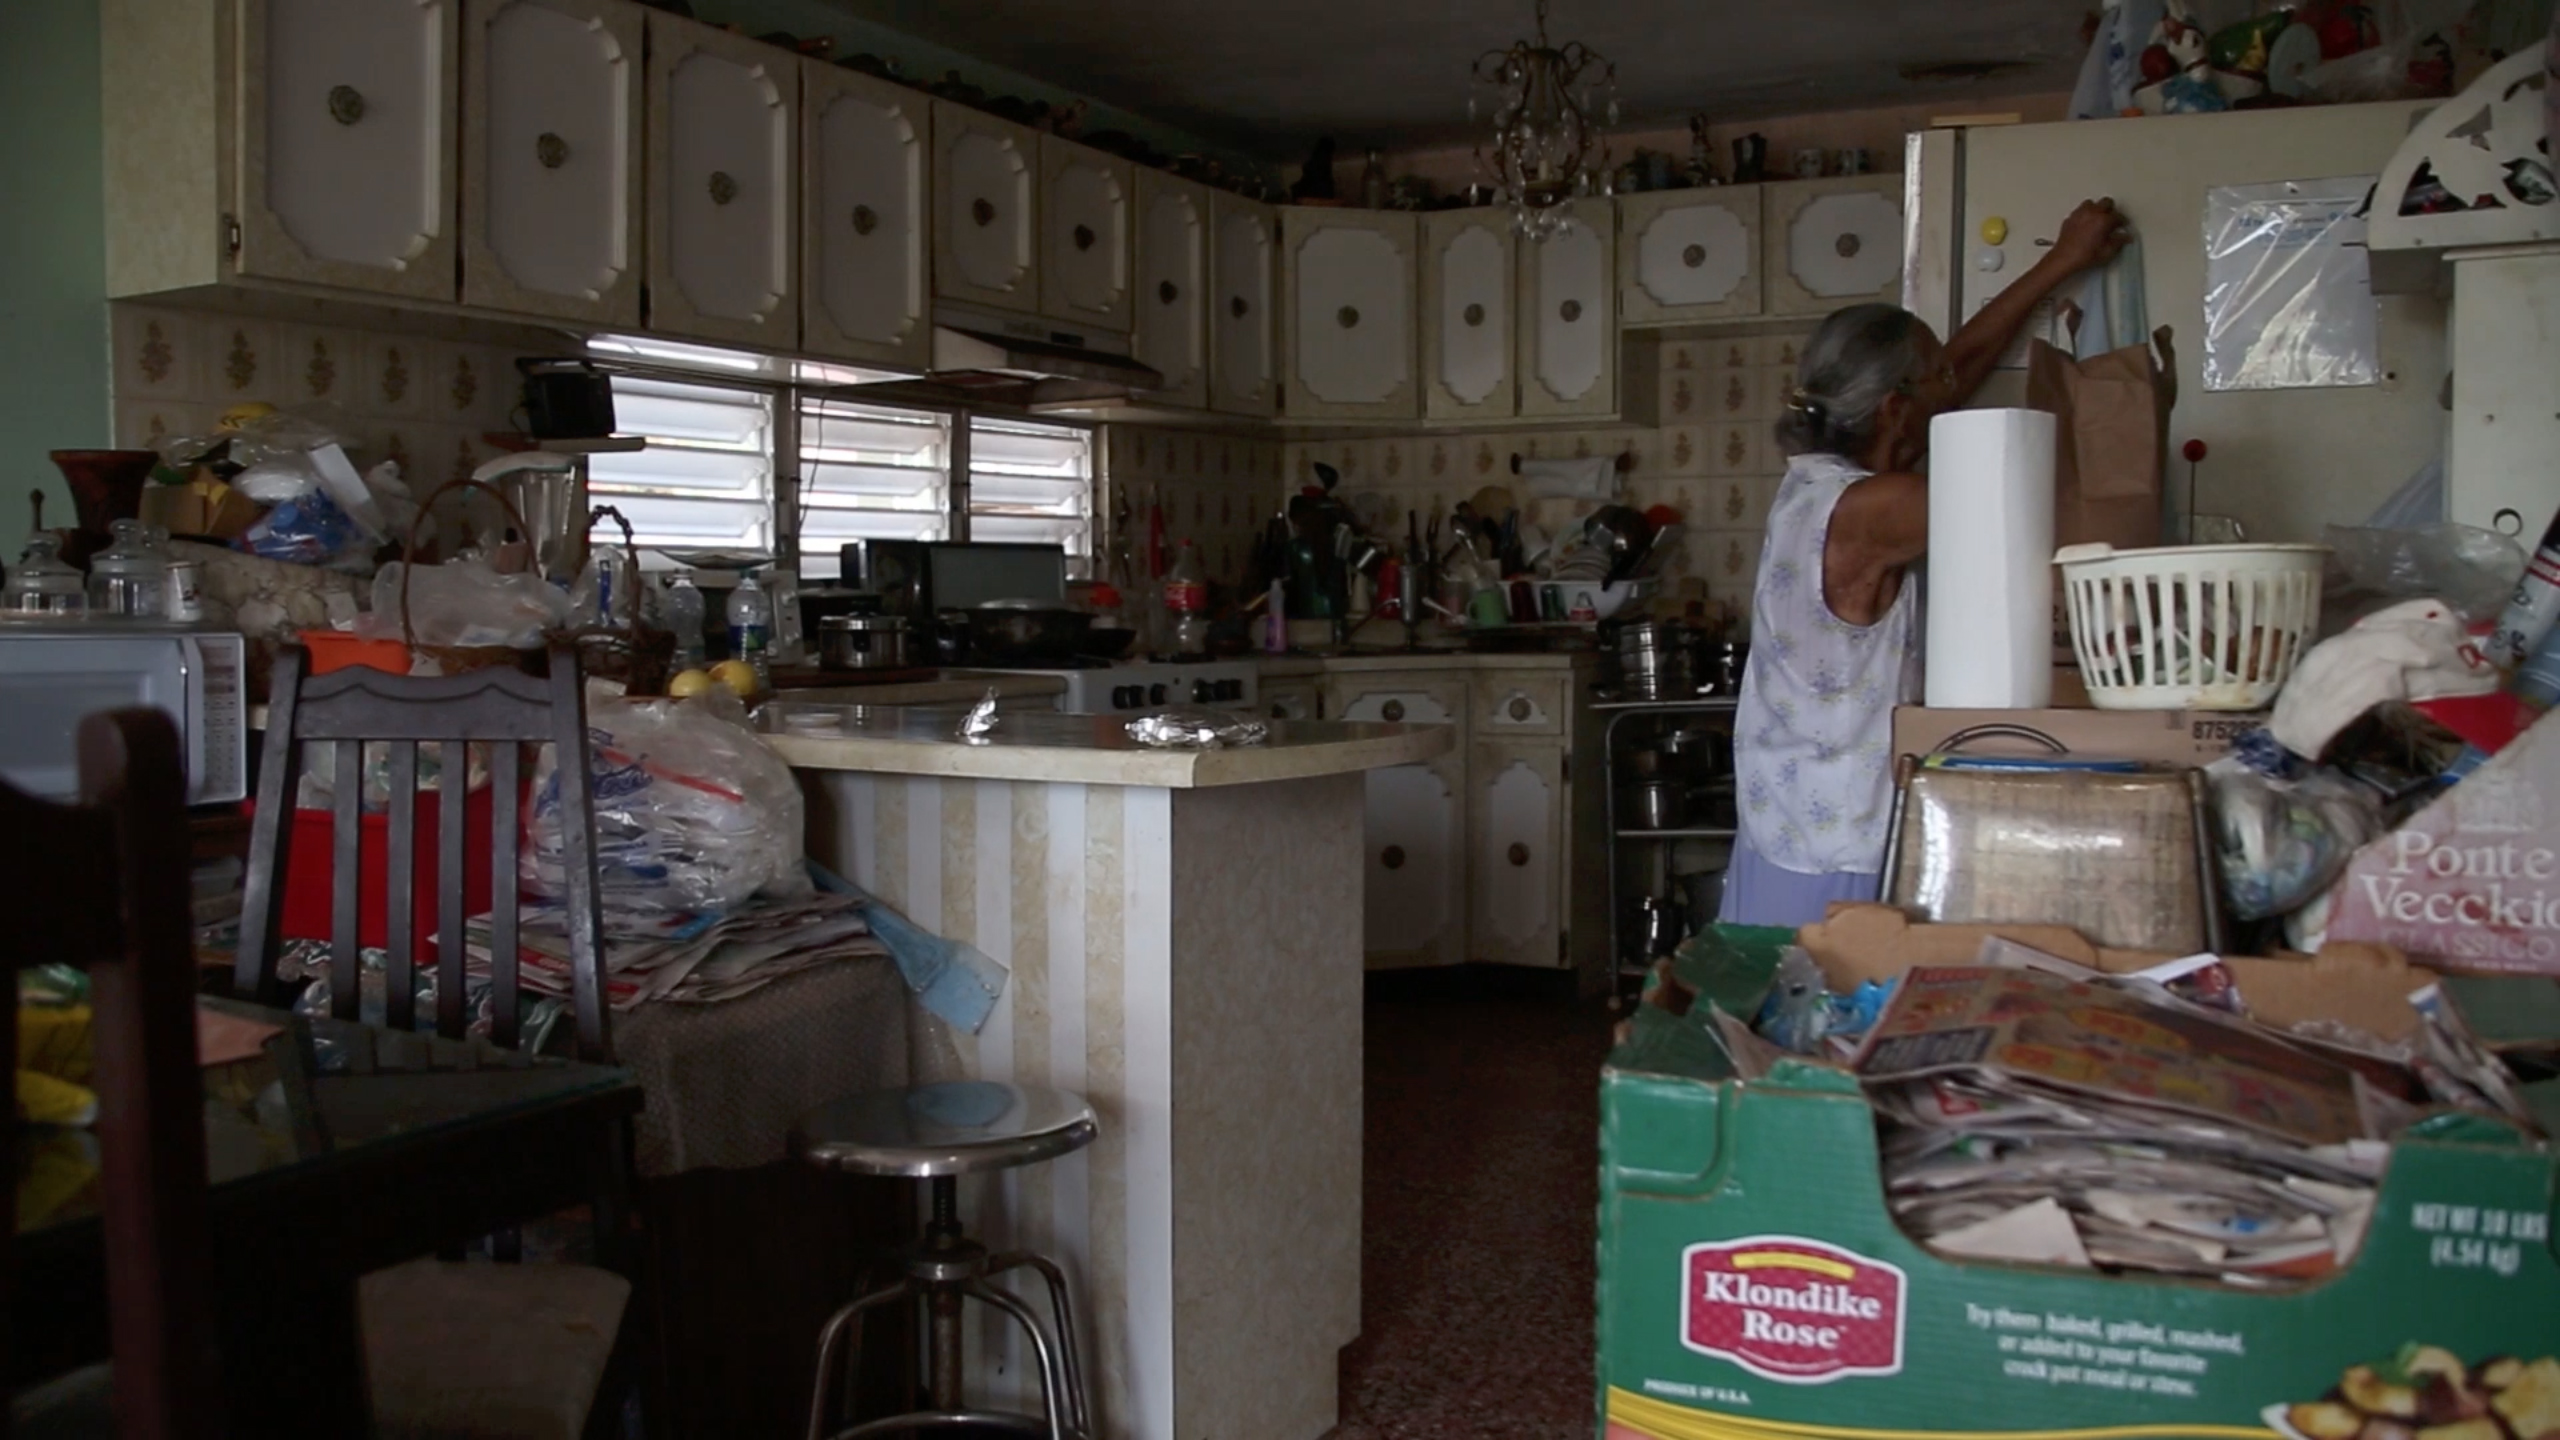 Video, Looped in multiple monitors 360 visual of grandparents living room, environmental and appropriated audio from youtube blog teaching Americans how to buy land in Puerto Rico